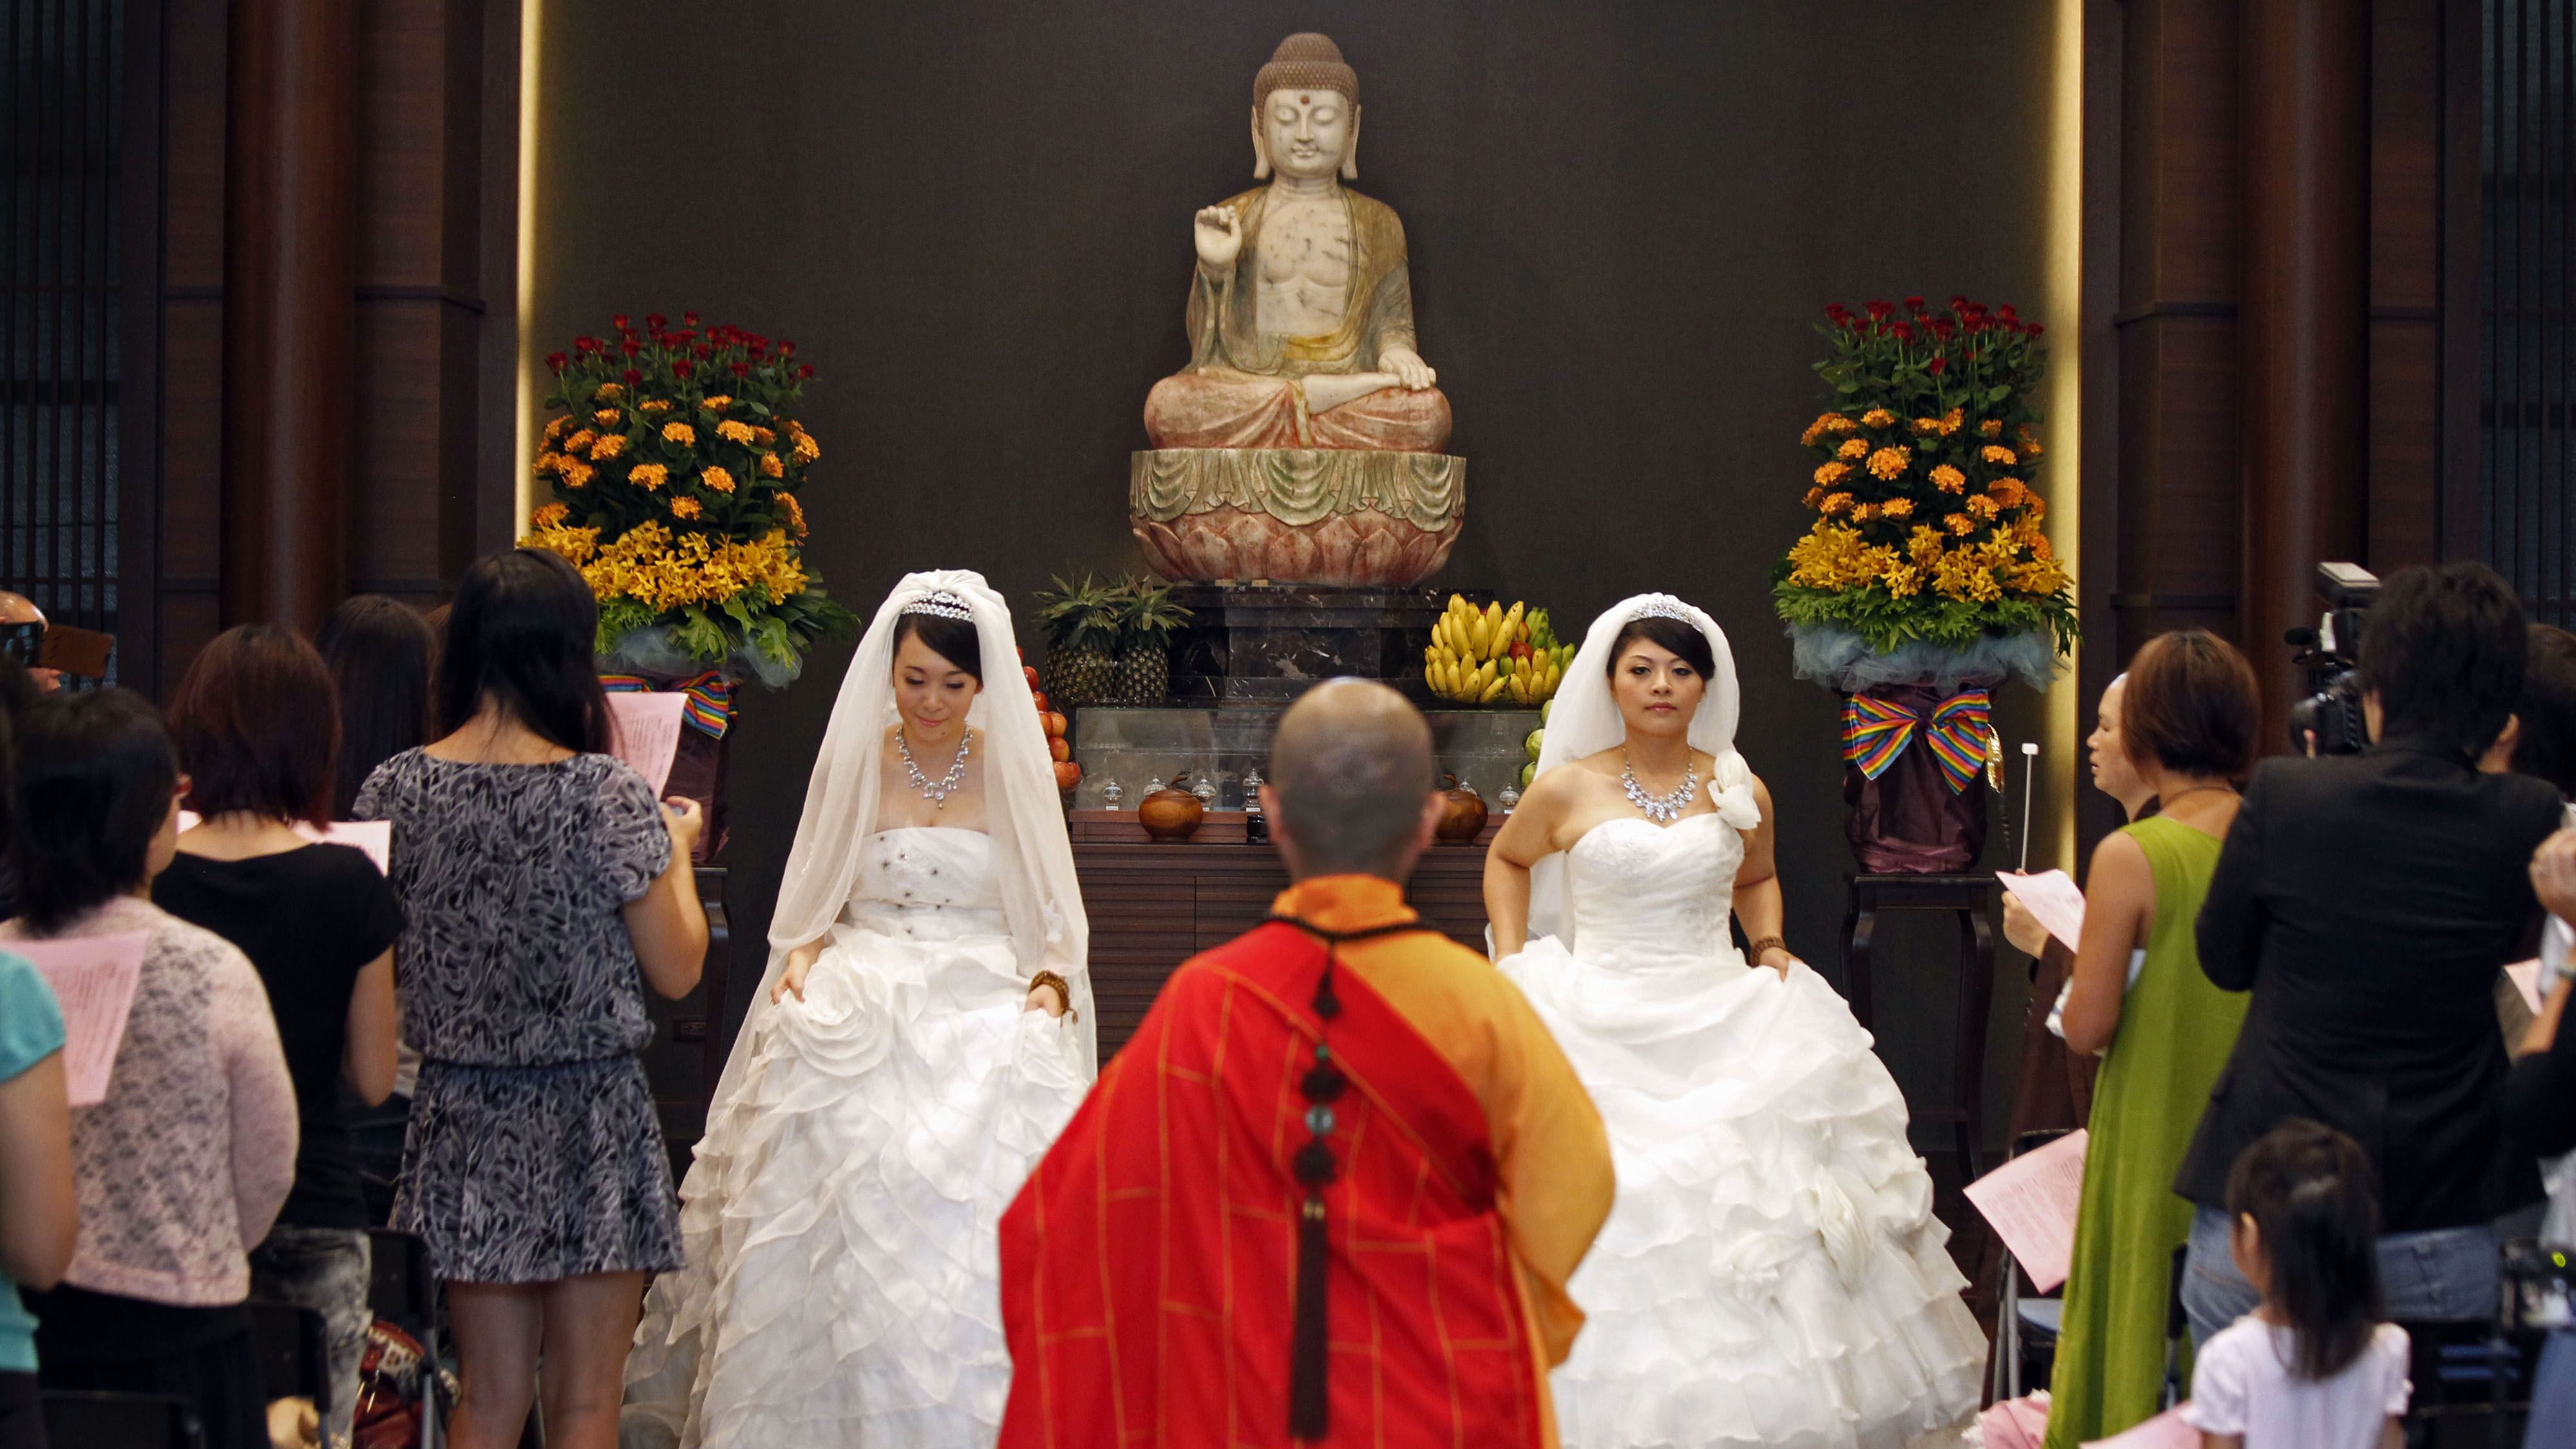 Buddhist view on homosexual marriage debate